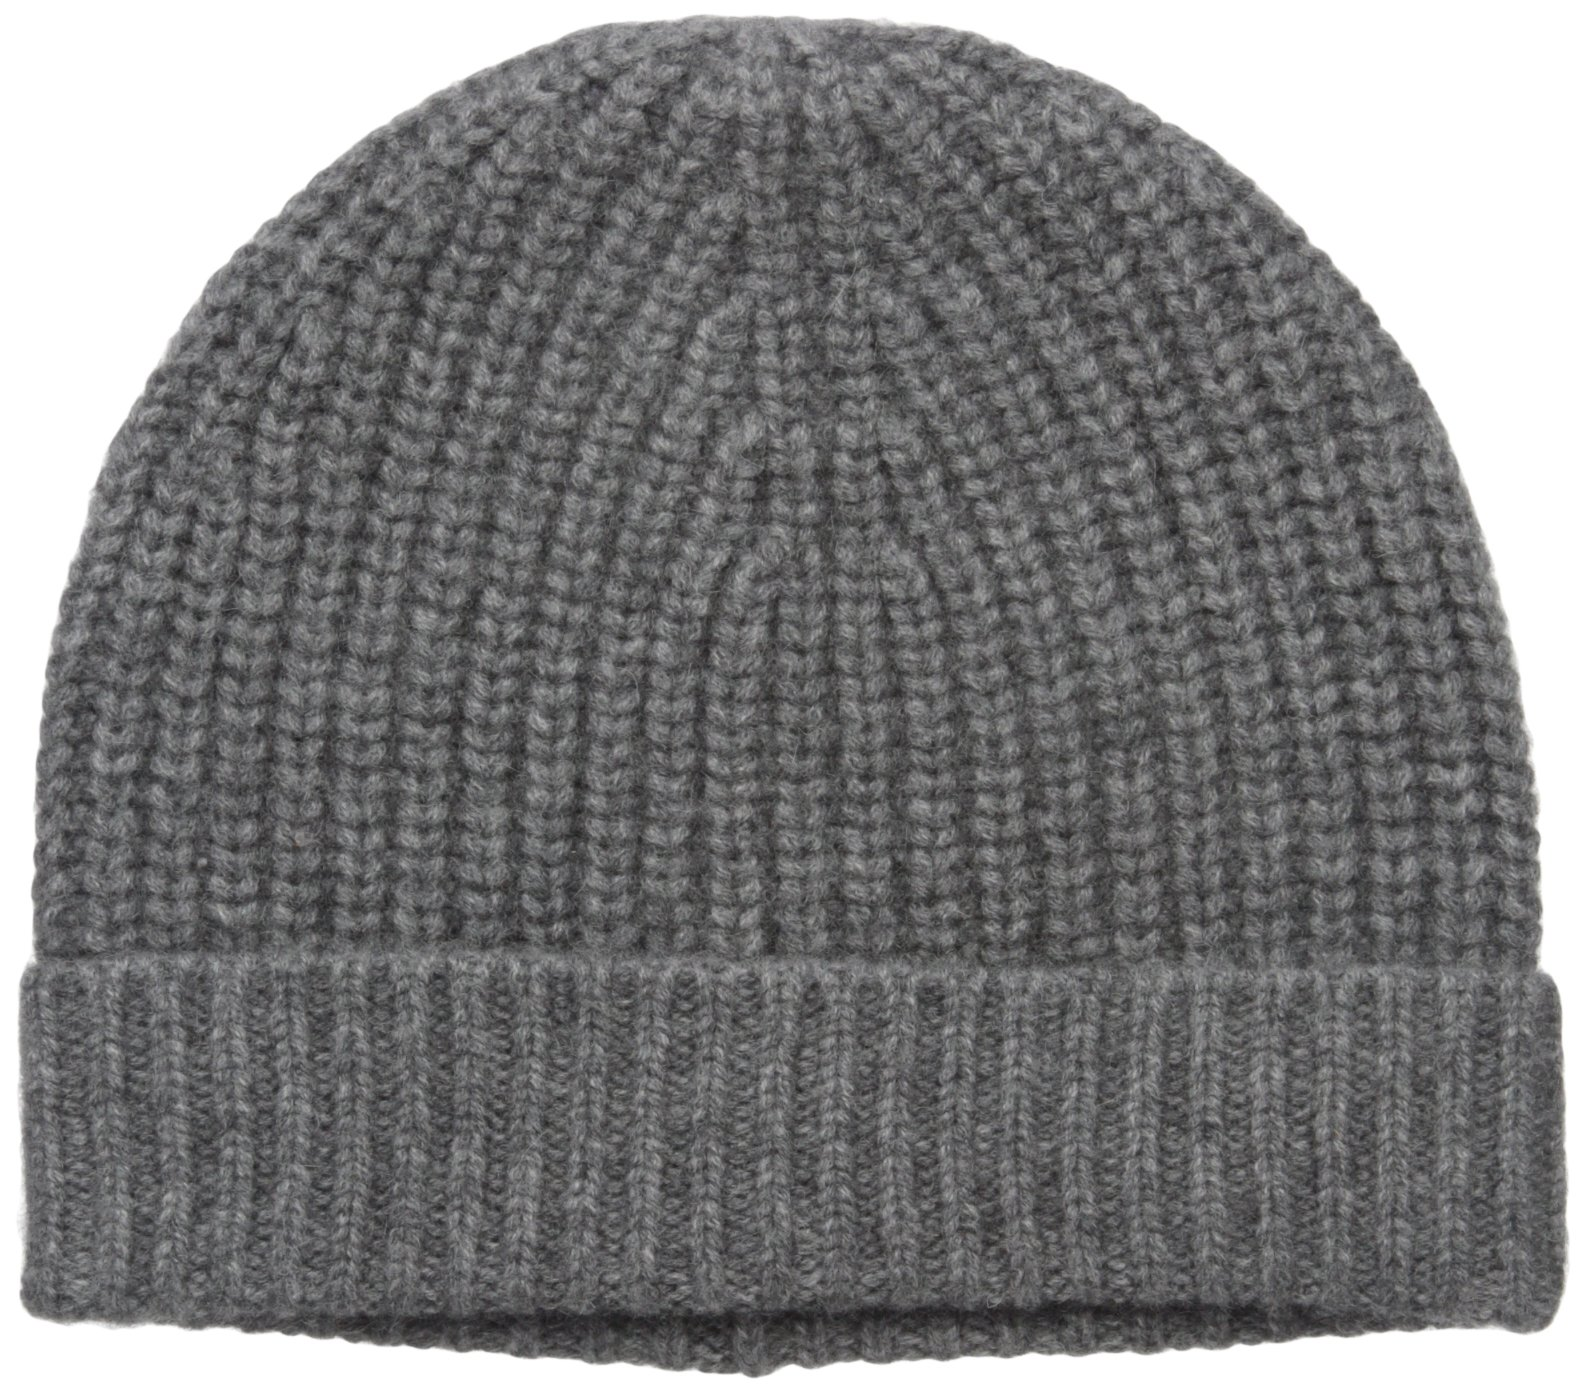 Sofia Cashmere Women's 100% Cashmere Shaker Rib Hat, Nightmist Grey, One Size